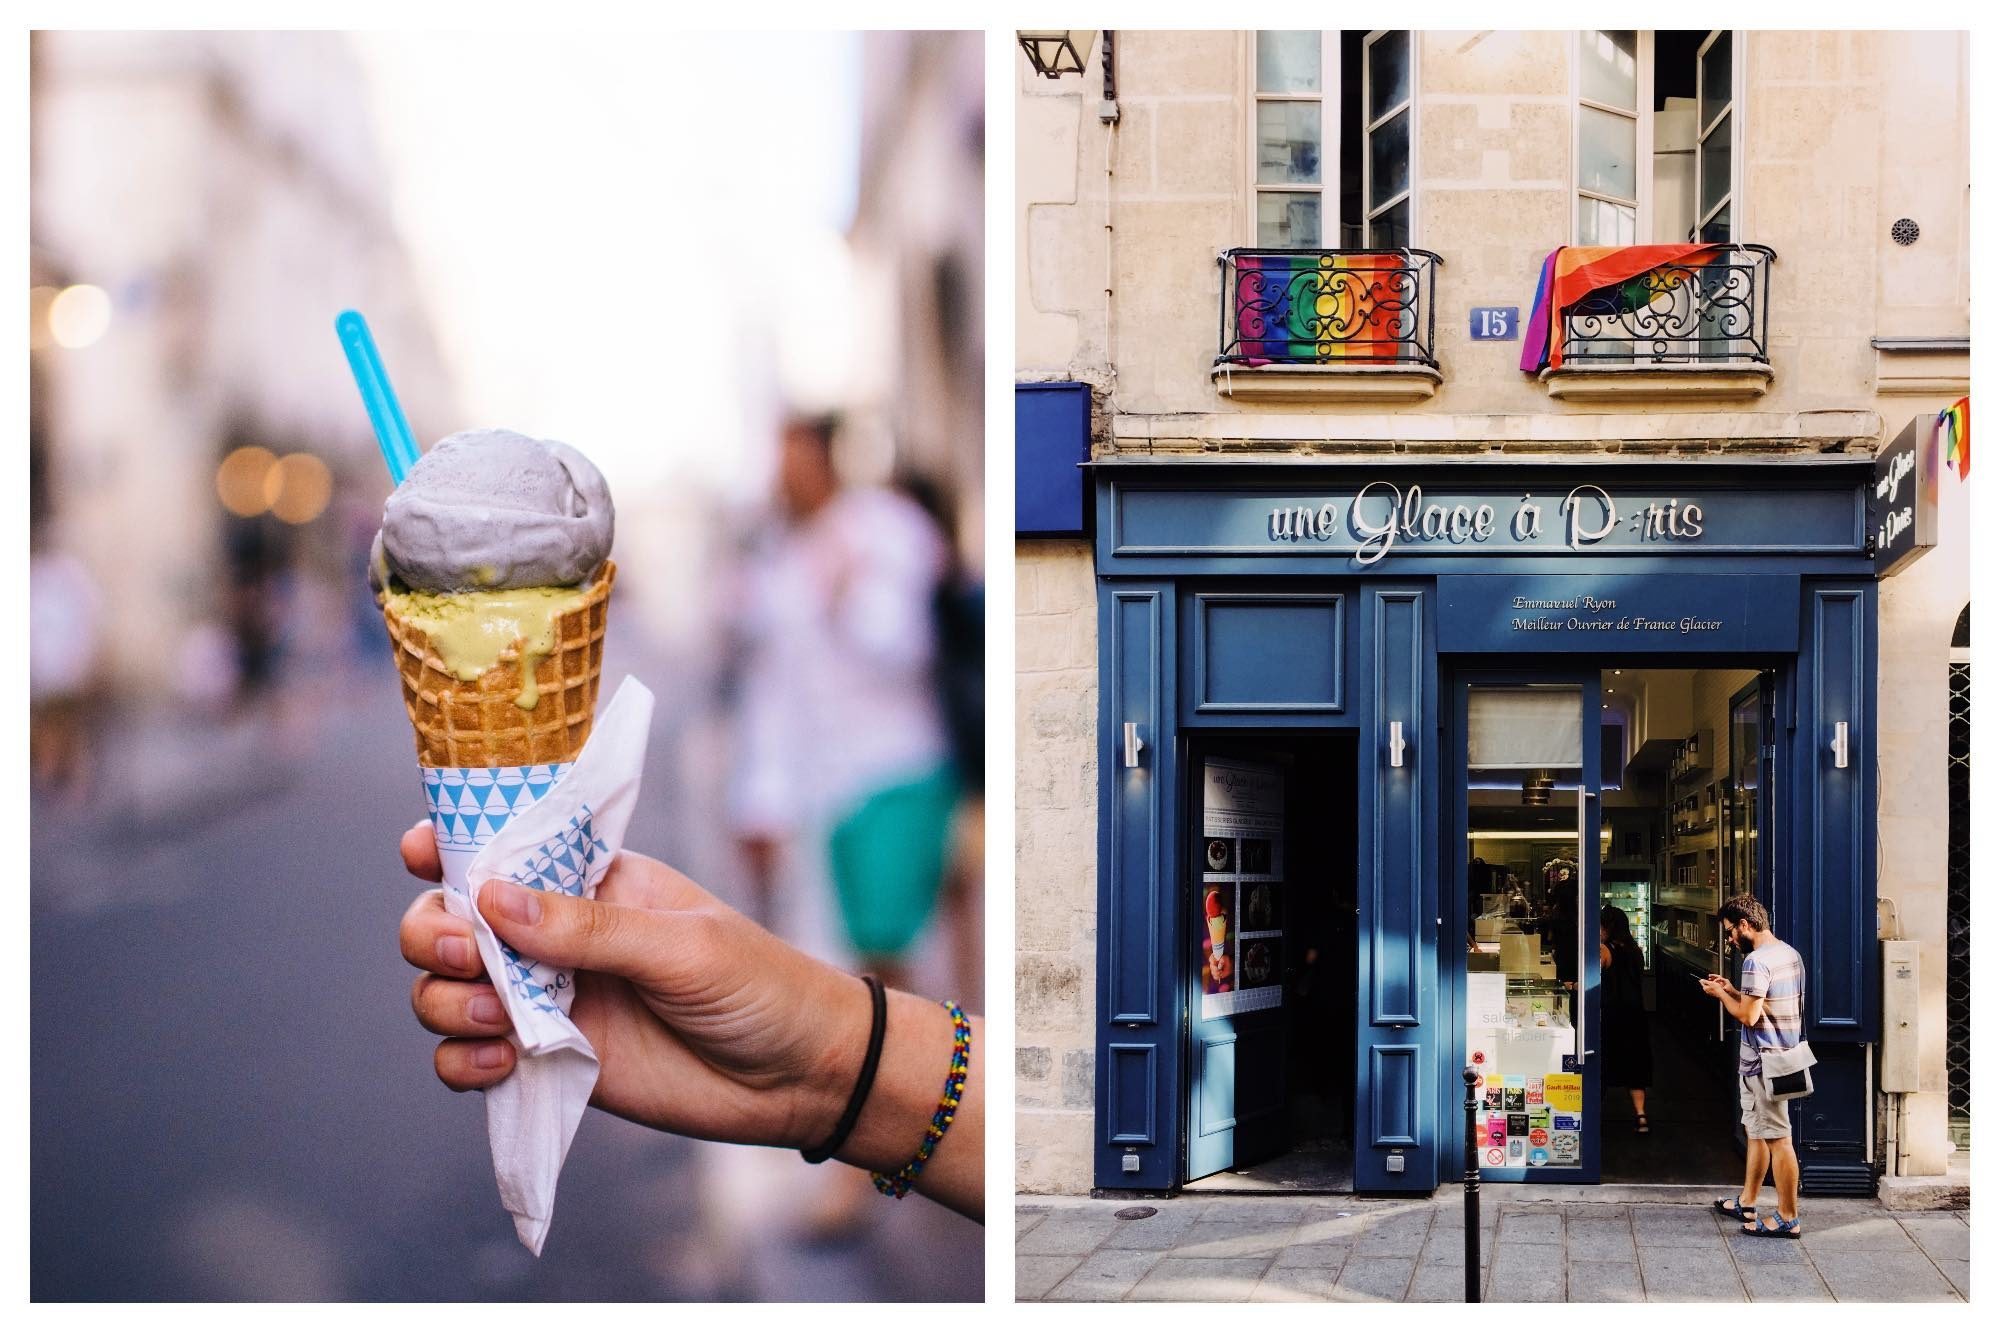 Two scoops of ice cream in a cone being help up by a person's hand (left). The blue exterior of Paris ice cream shop Une Glace à Paris (right).